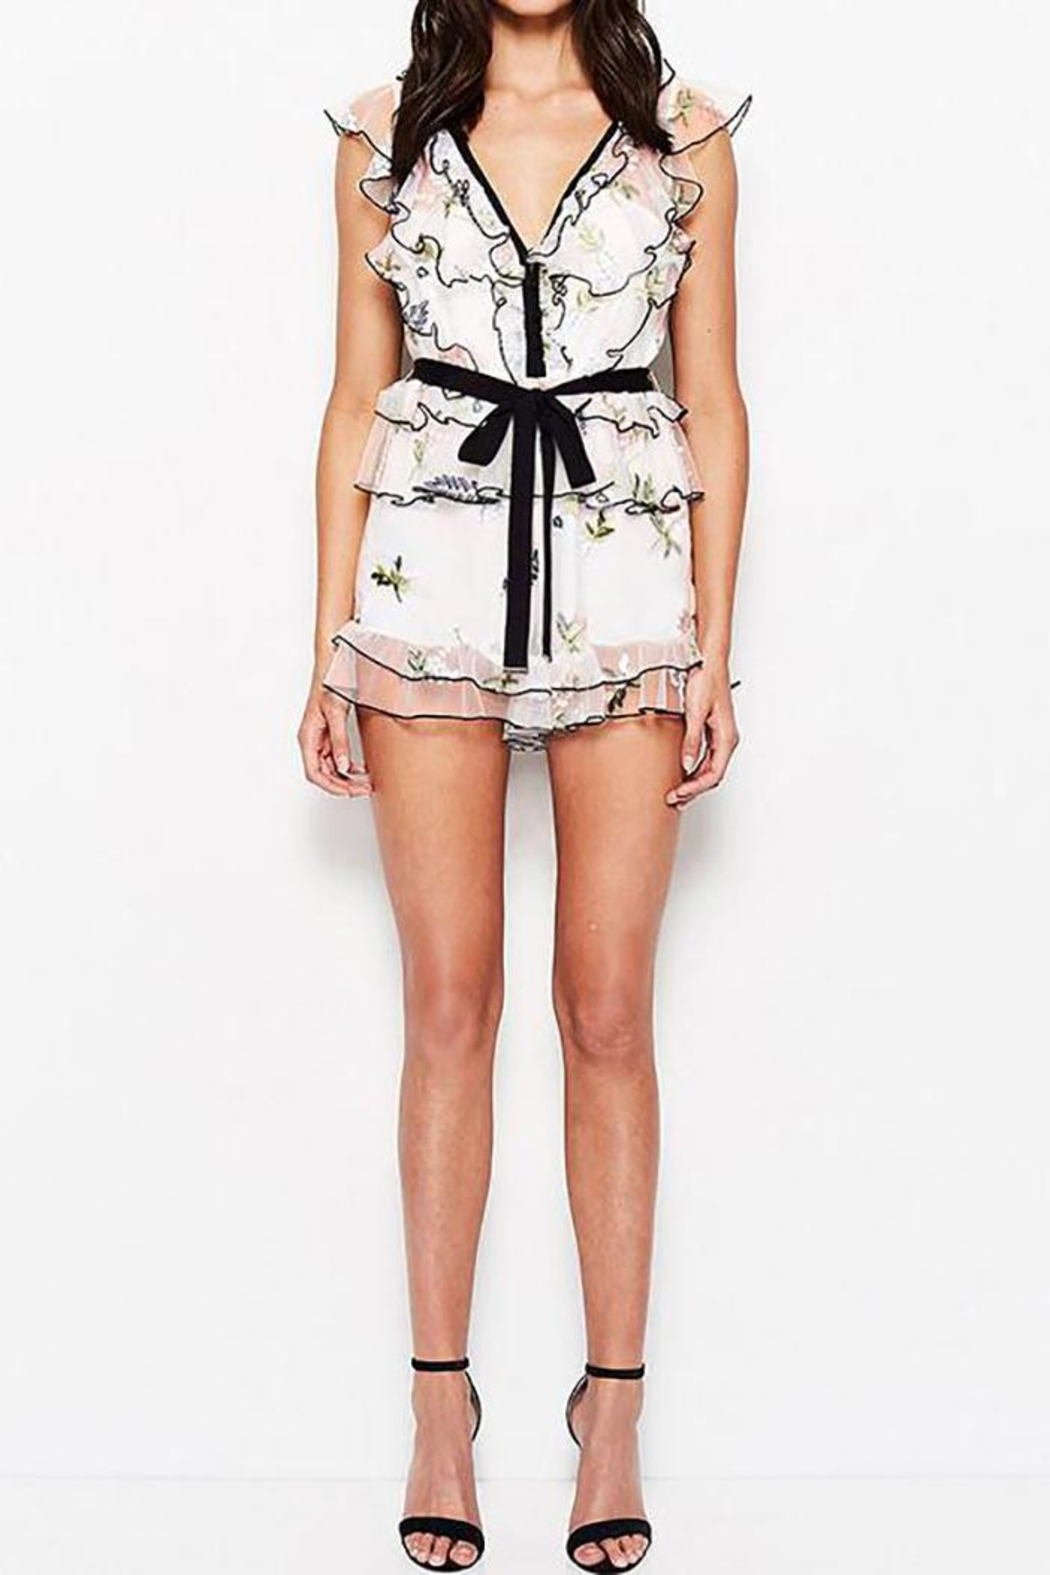 ff2f45f9535 Alice McCall Playsuit Porcelain Berry from Toronto by Room 29 ...